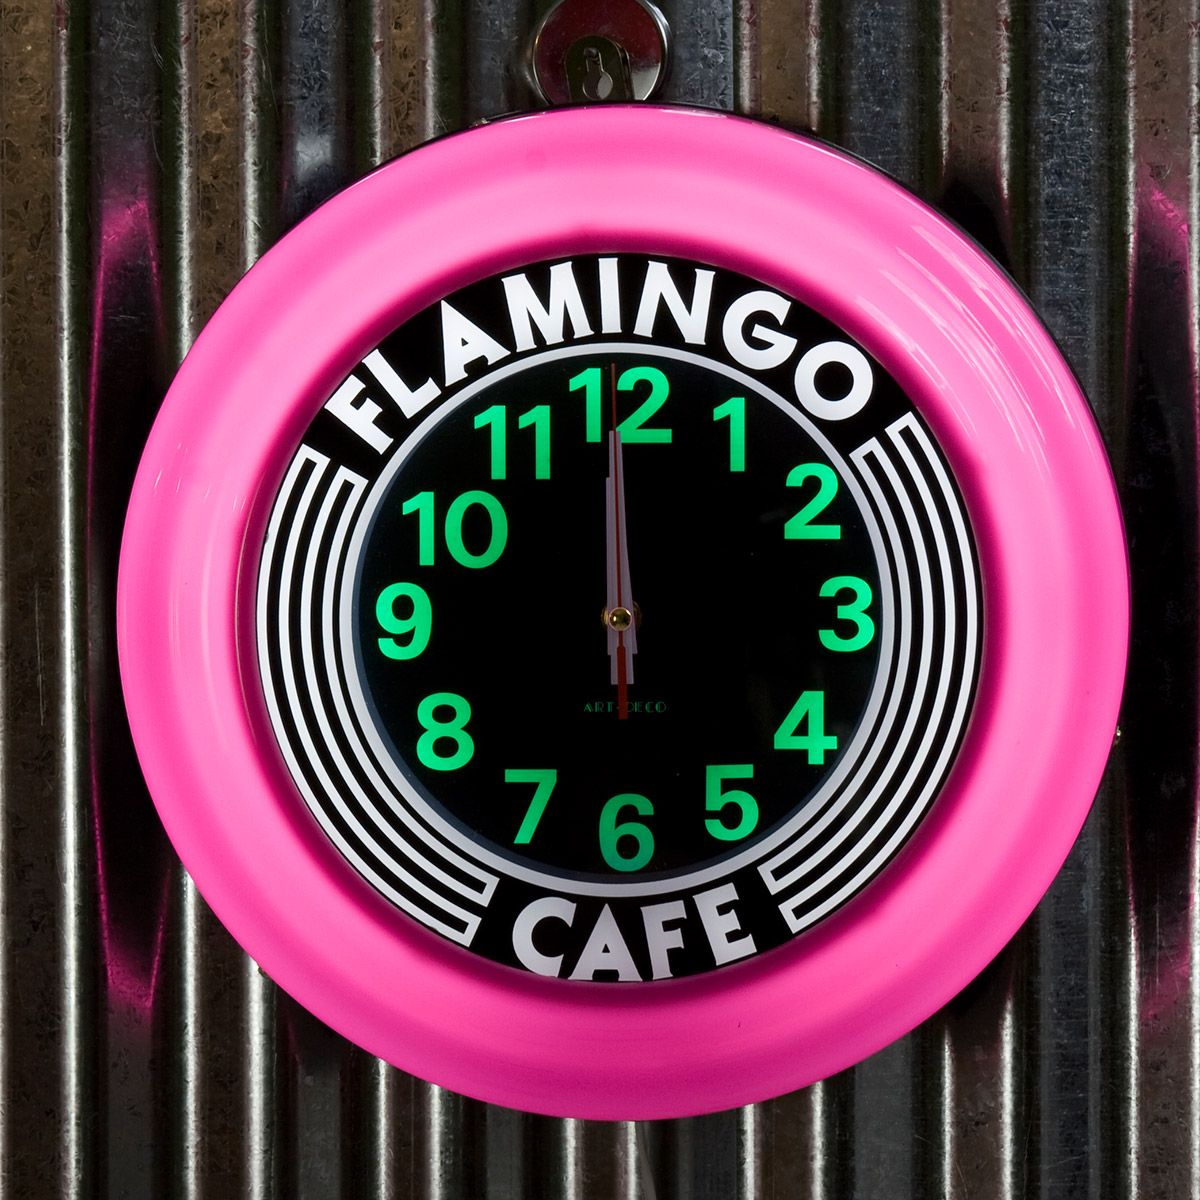 Flamingo Cafe Pink Lighted Kitchen Wall Clock Kitchen